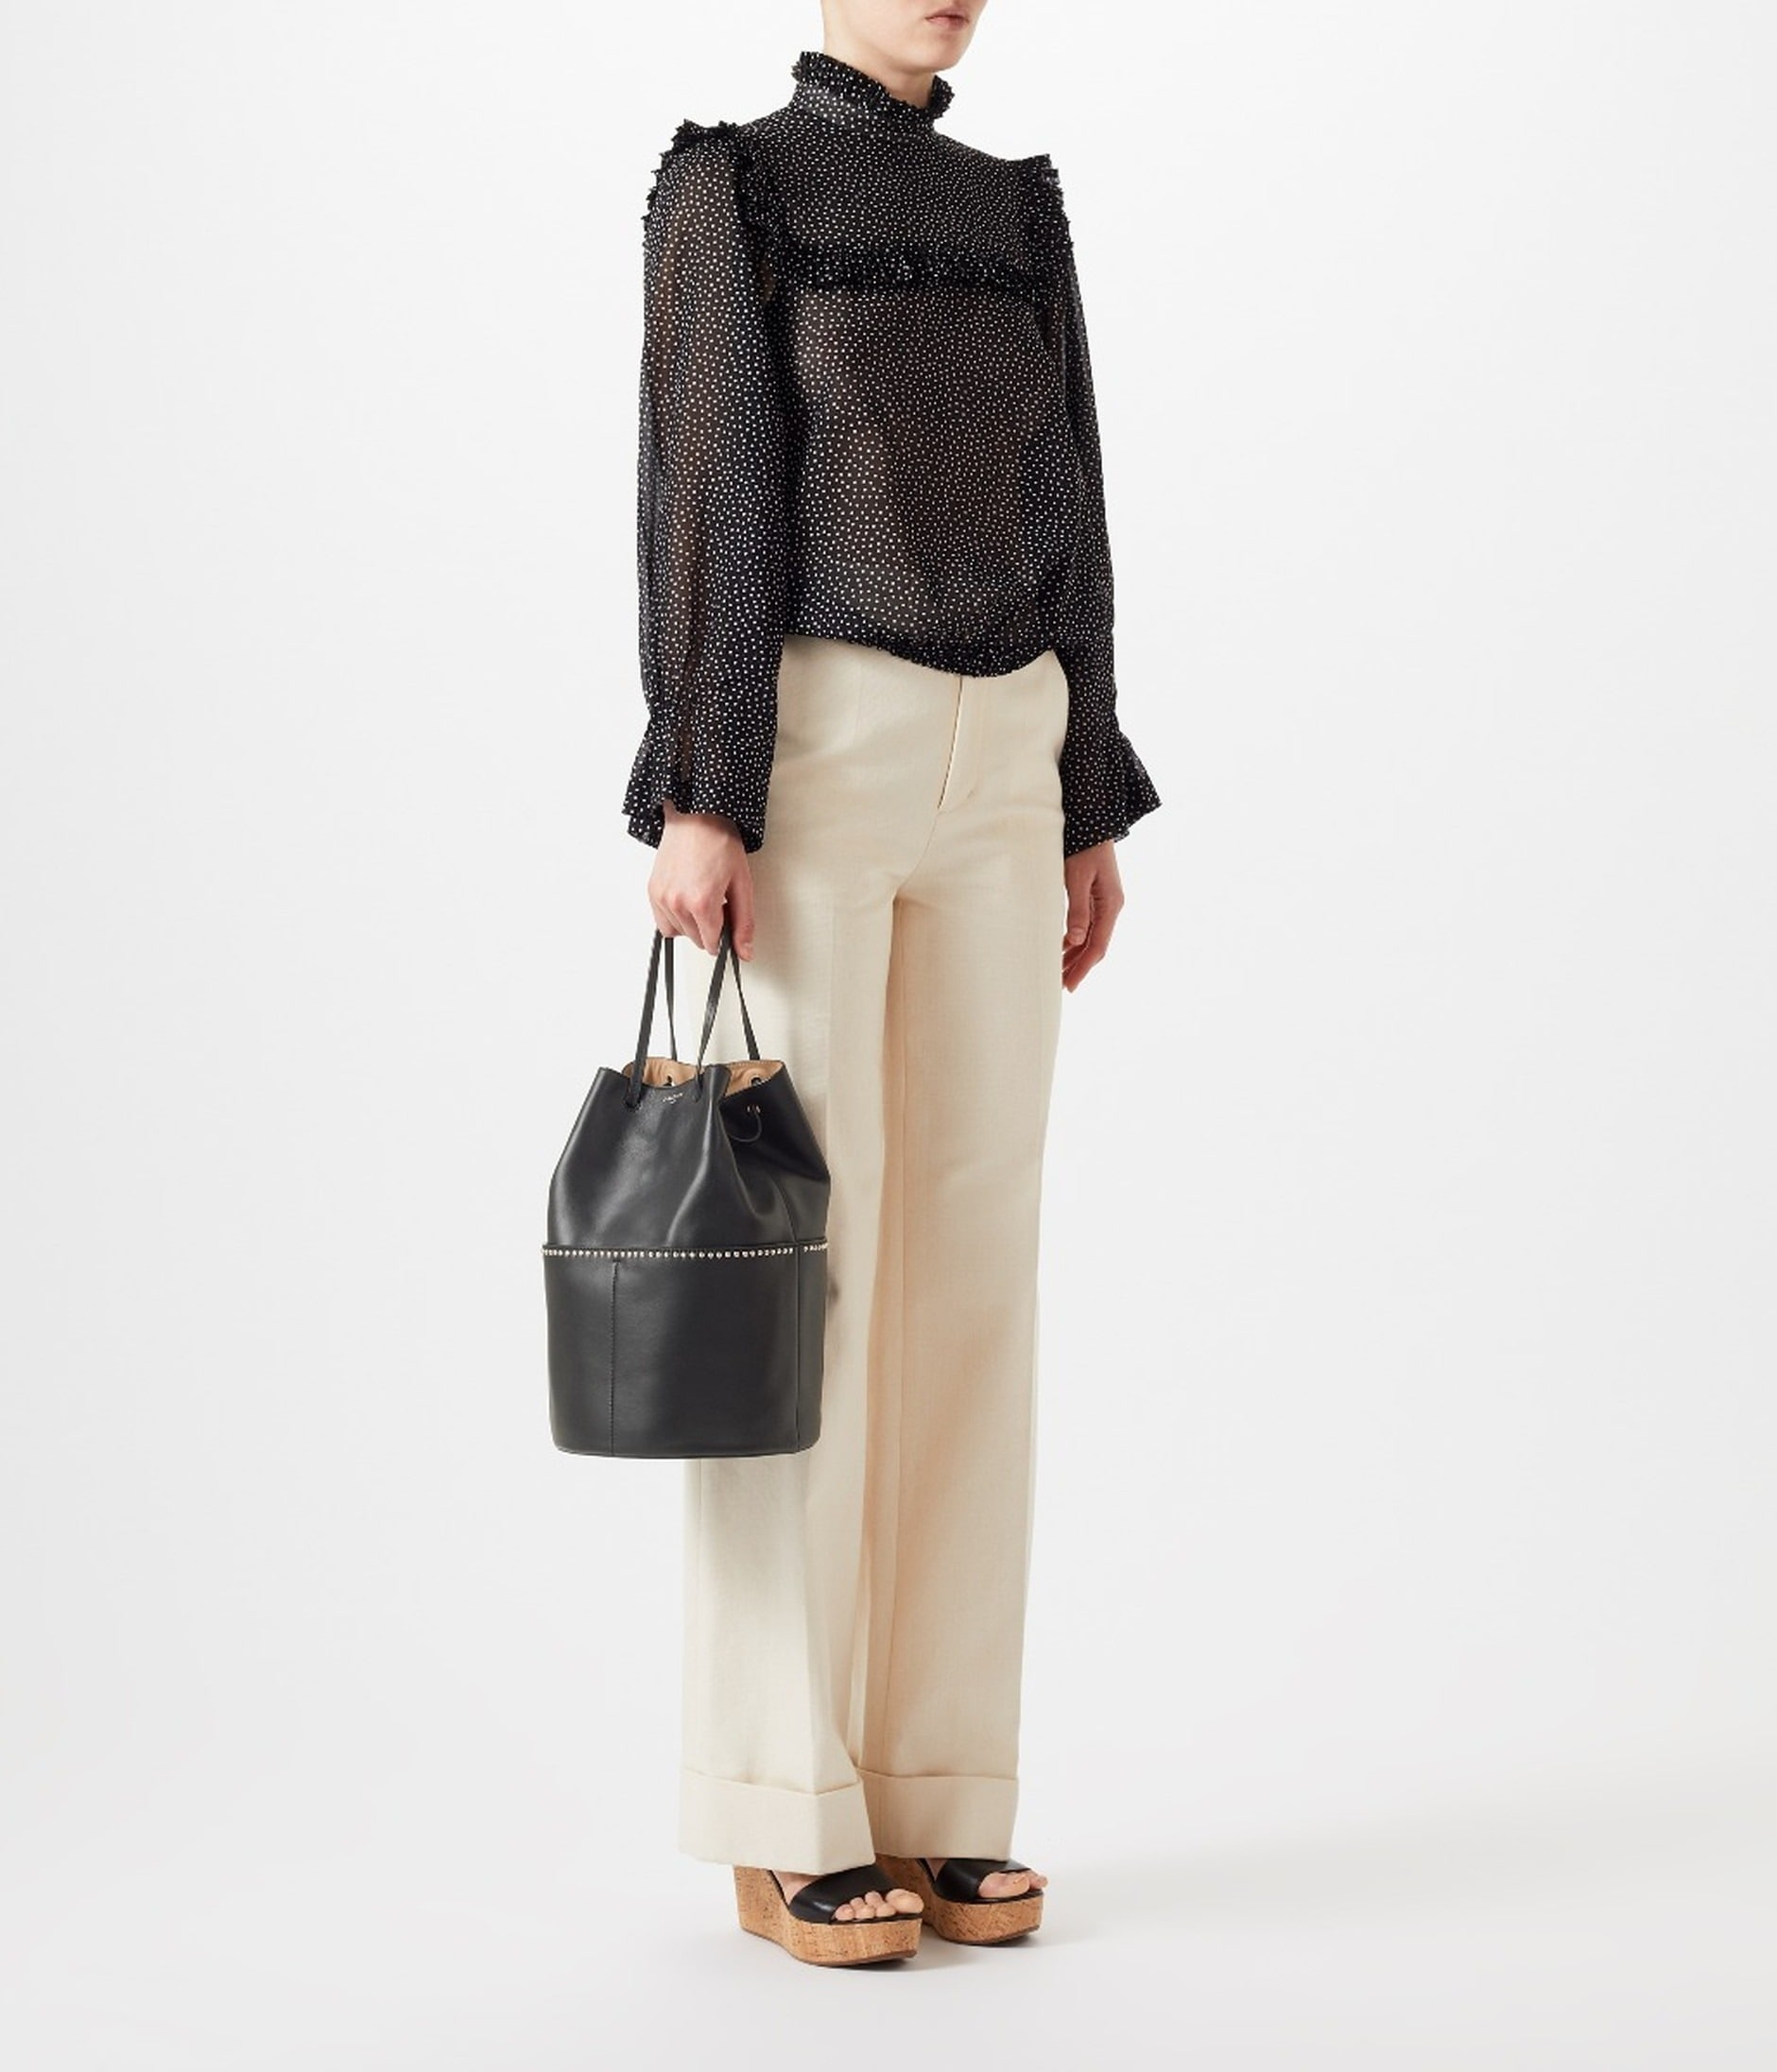 CATALINA TROUSERS 詳細画像 OFF WHITE 4